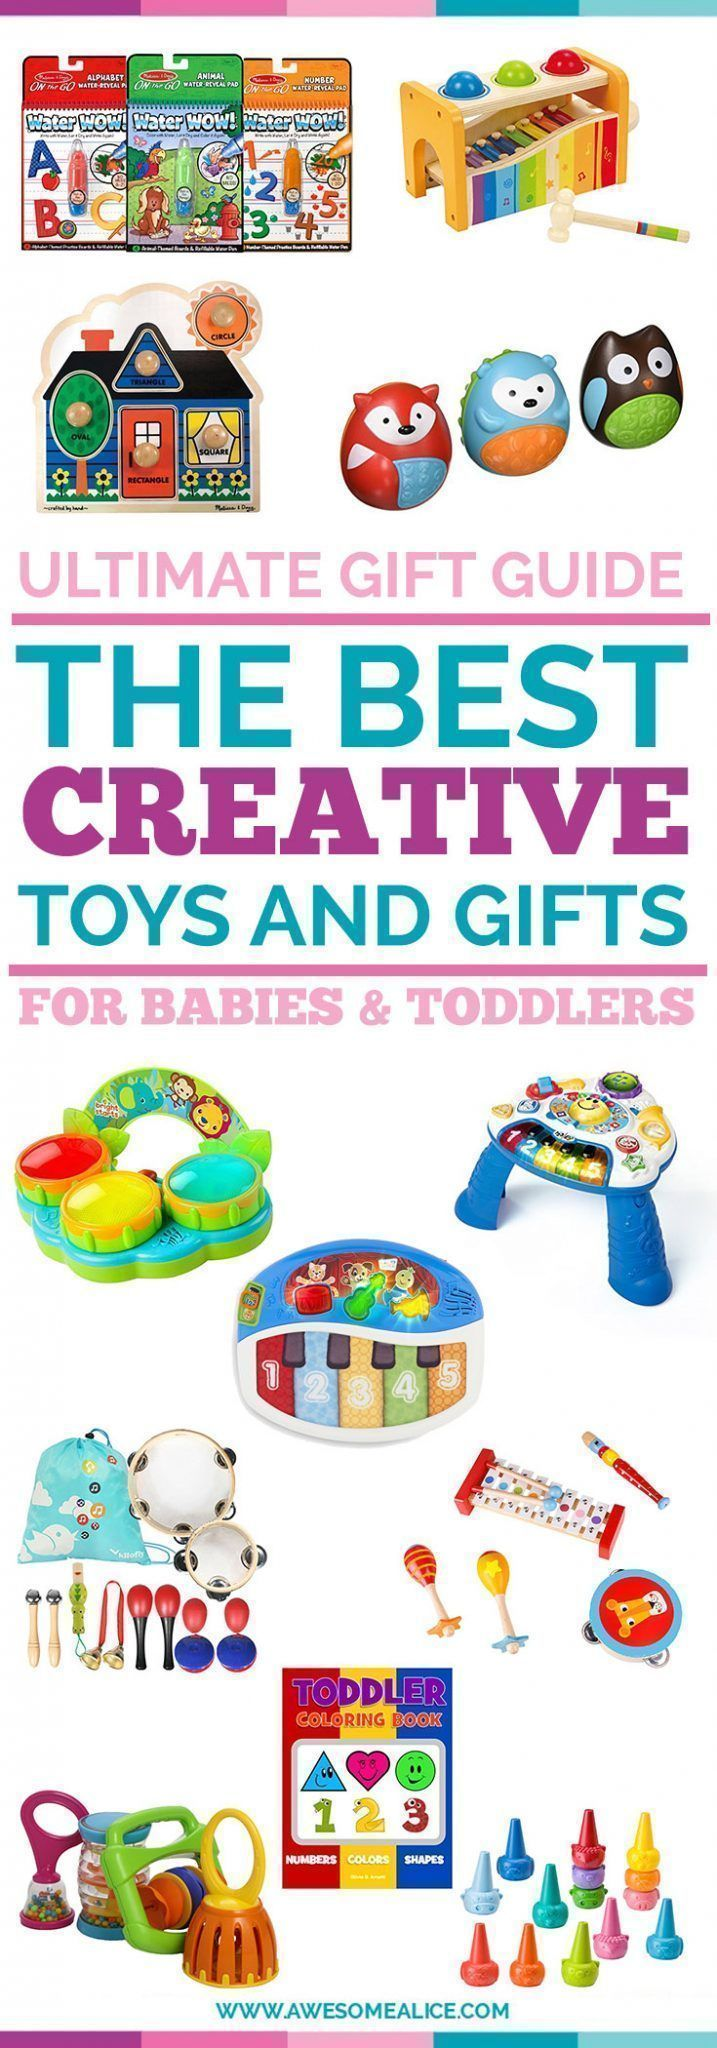 Creative Toys Gift Guide For Babies And Toddlers | Christmas Gifts For Kids | Perfect Christmas Gift For Babies | The Best Toddler Creativity Toys | The Best Baby Music Toys | Toddler Christmas Gift Guide | The Best Kids Gift Guide | Holiday Gifts For Kids | #giftguide | #toddlers | #Christmas | www.awesomealice.com #christmasforkids